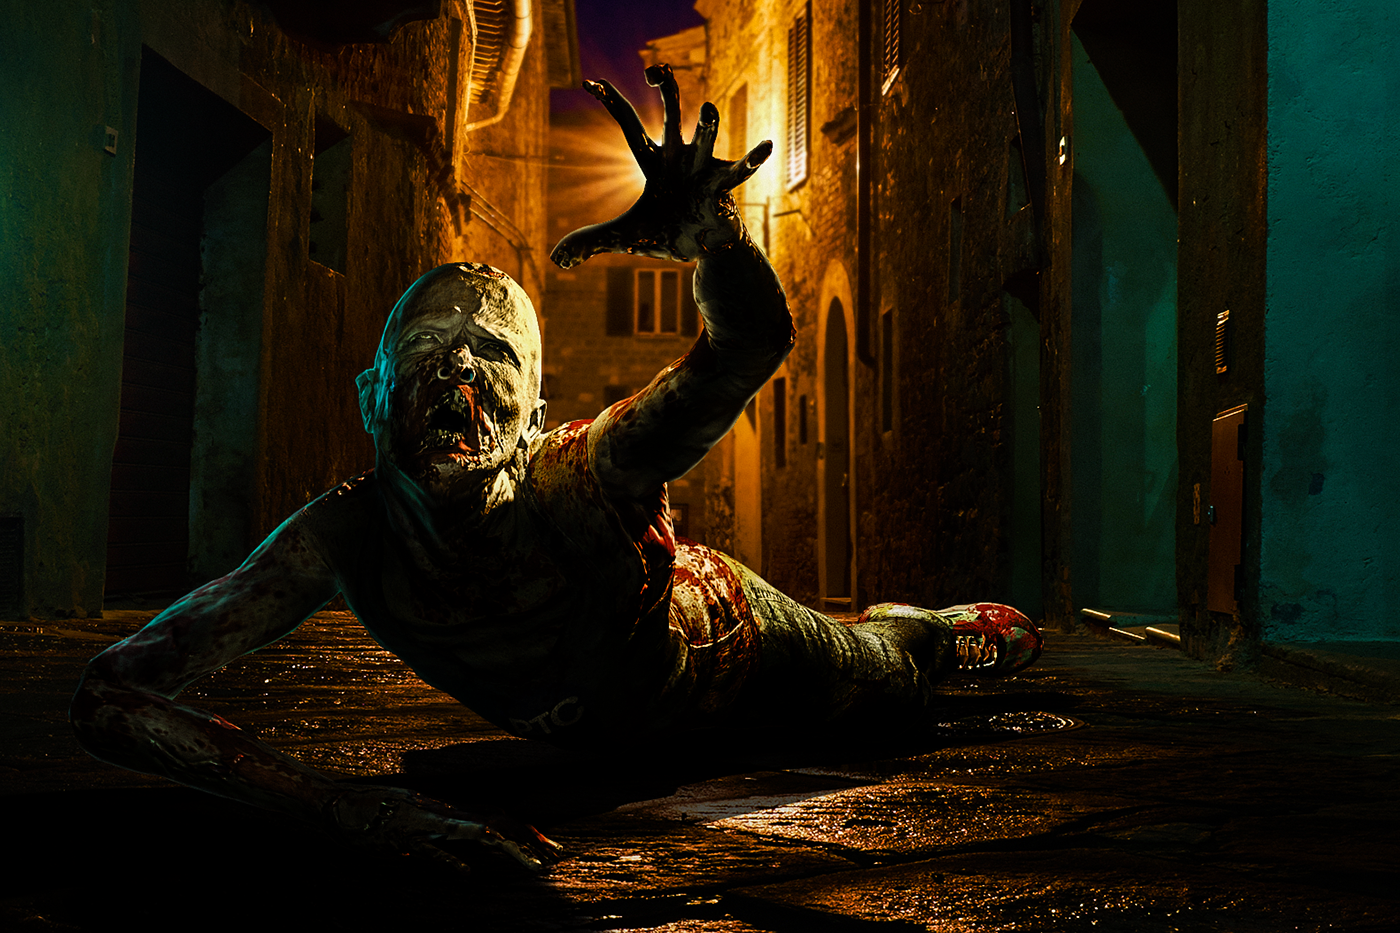 3D Zombie in Adobe Fuse CC on Behance